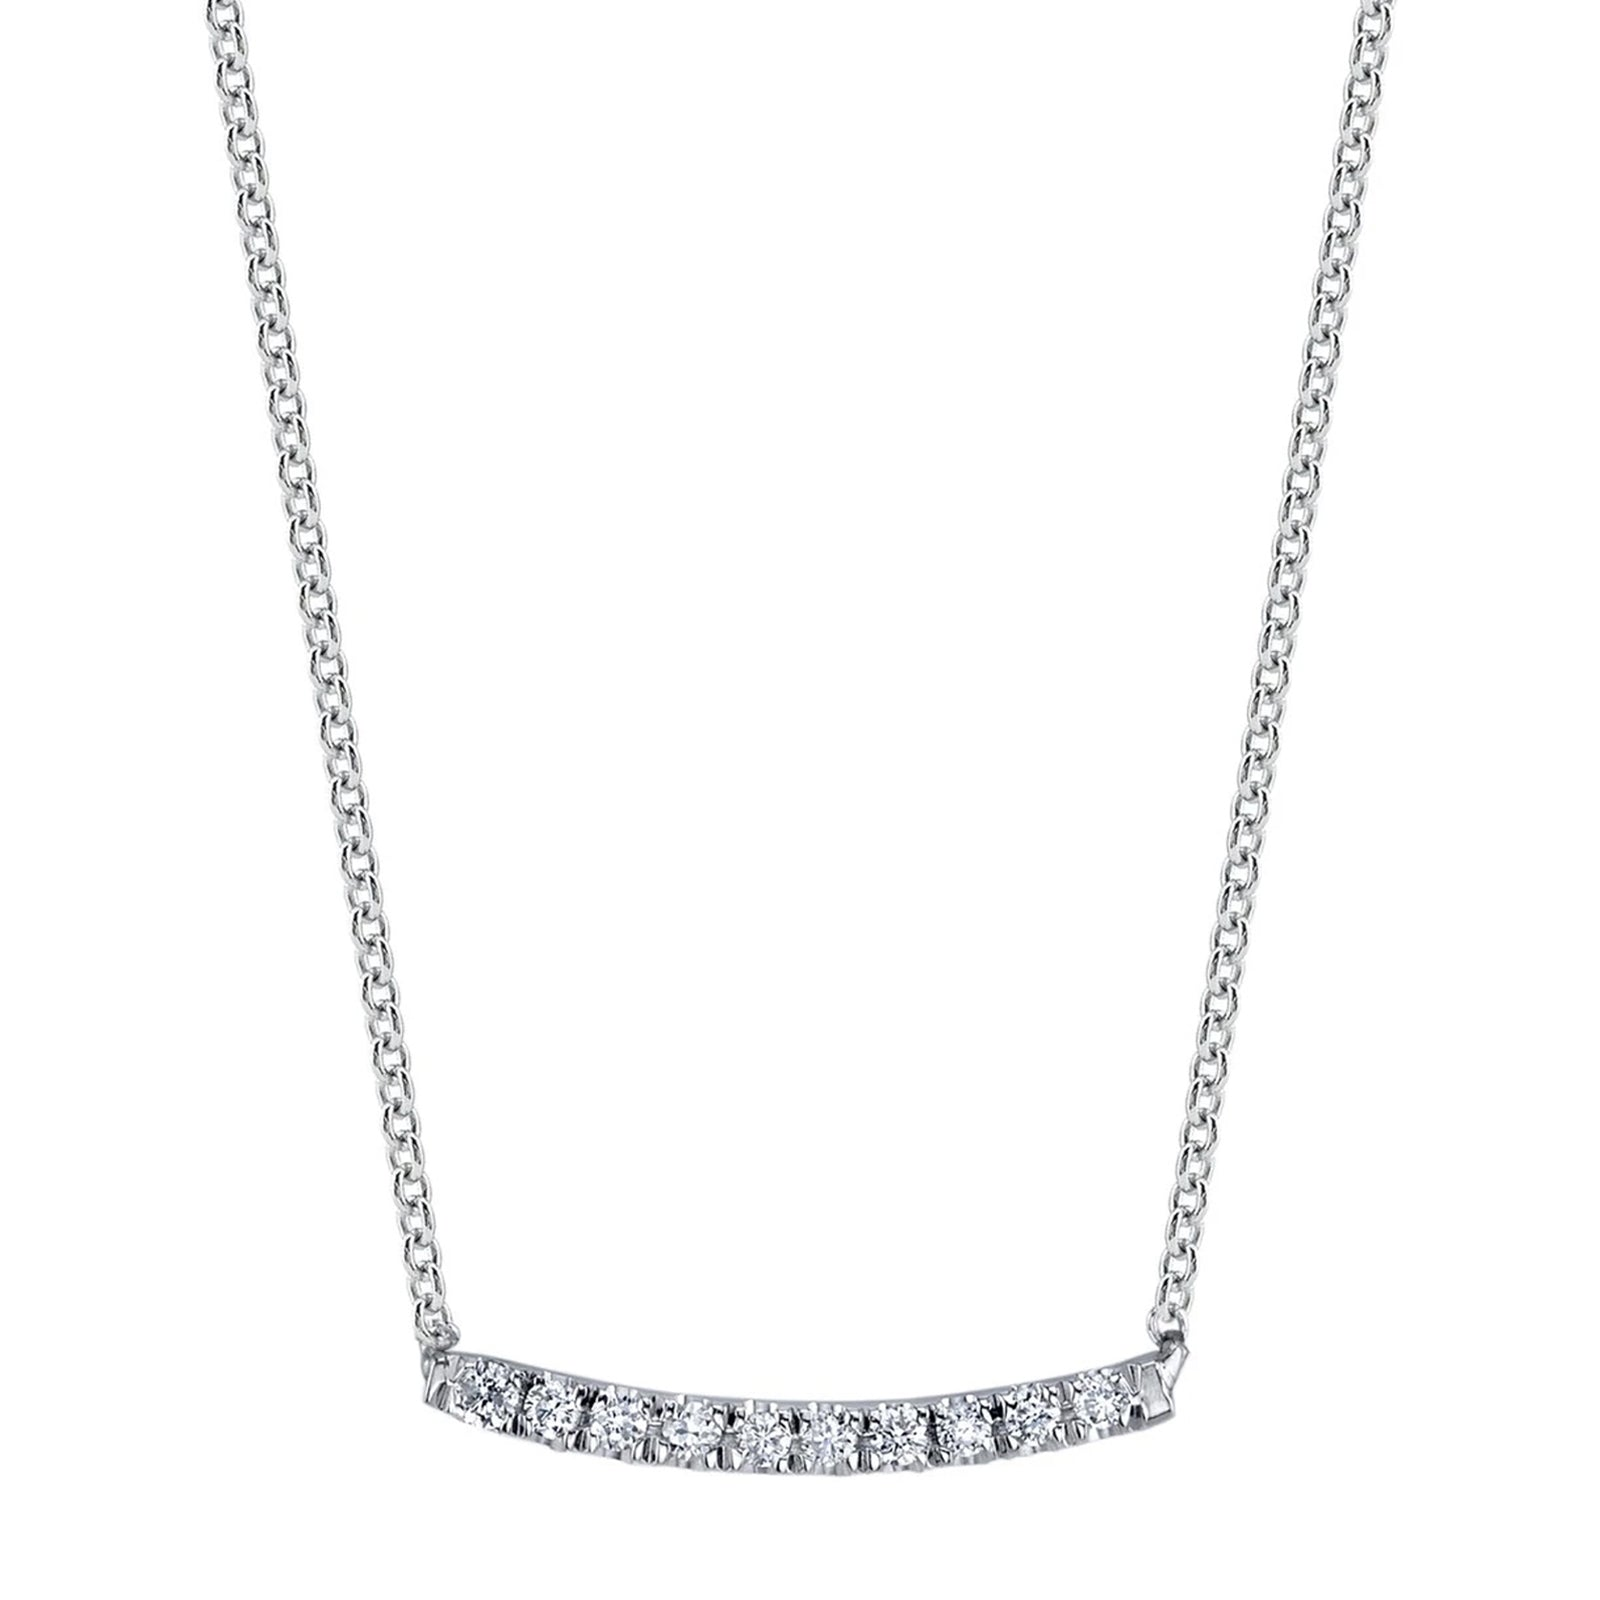 Gabriela Artigas & Company Mini Axis Necklace - White Gold - Necklaces - Broken English Jewelry